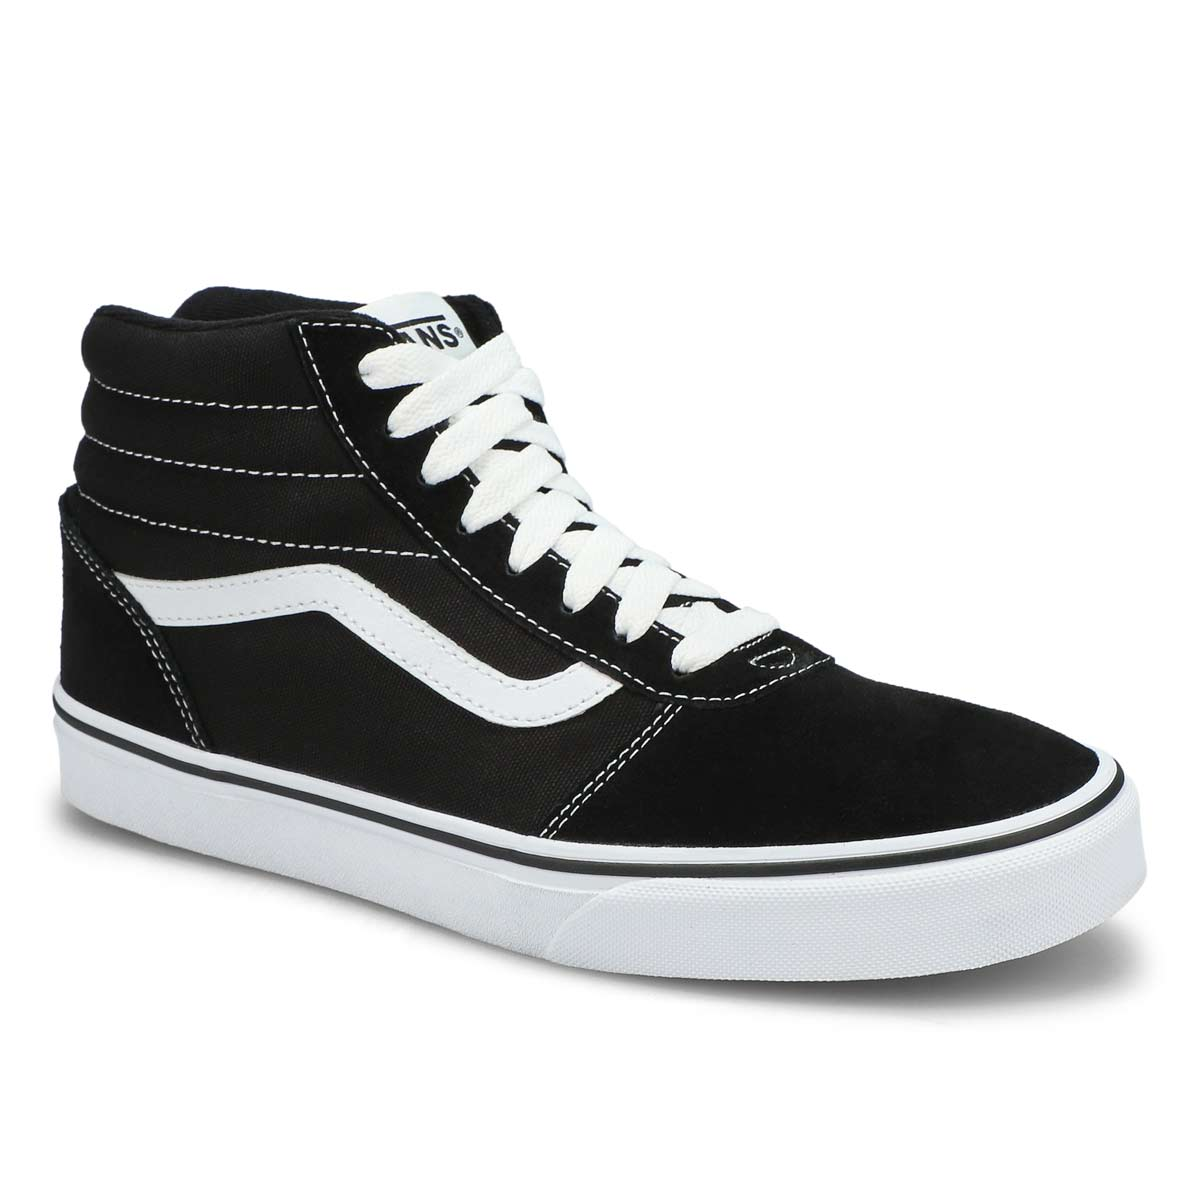 Men's WARD HI black/white lace up sneakers